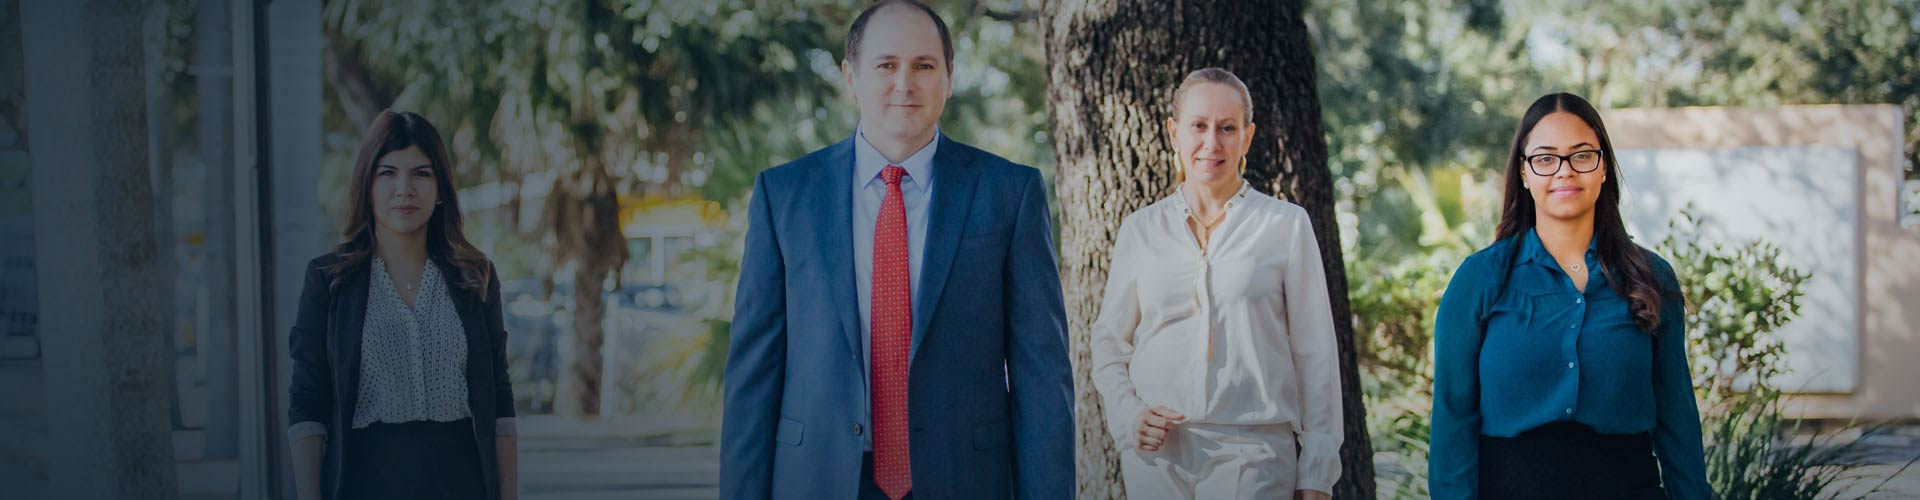 Boca Raton Chapter 13 Bankruptcy Attorneys - Stiberman Law Firm